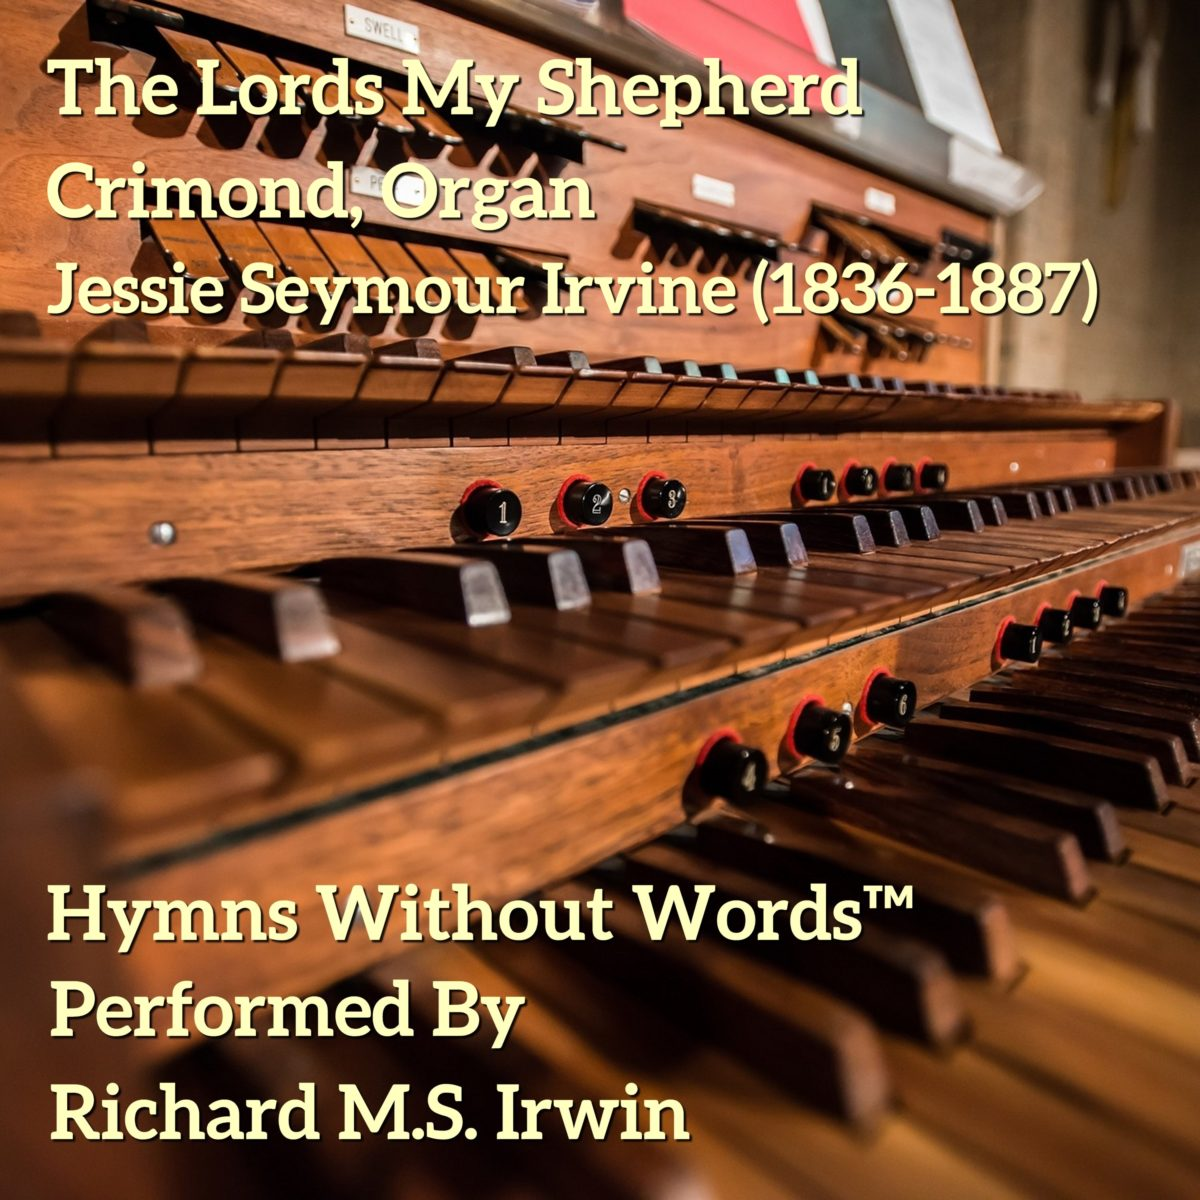 The Lord's My Shepherd (Crimond)